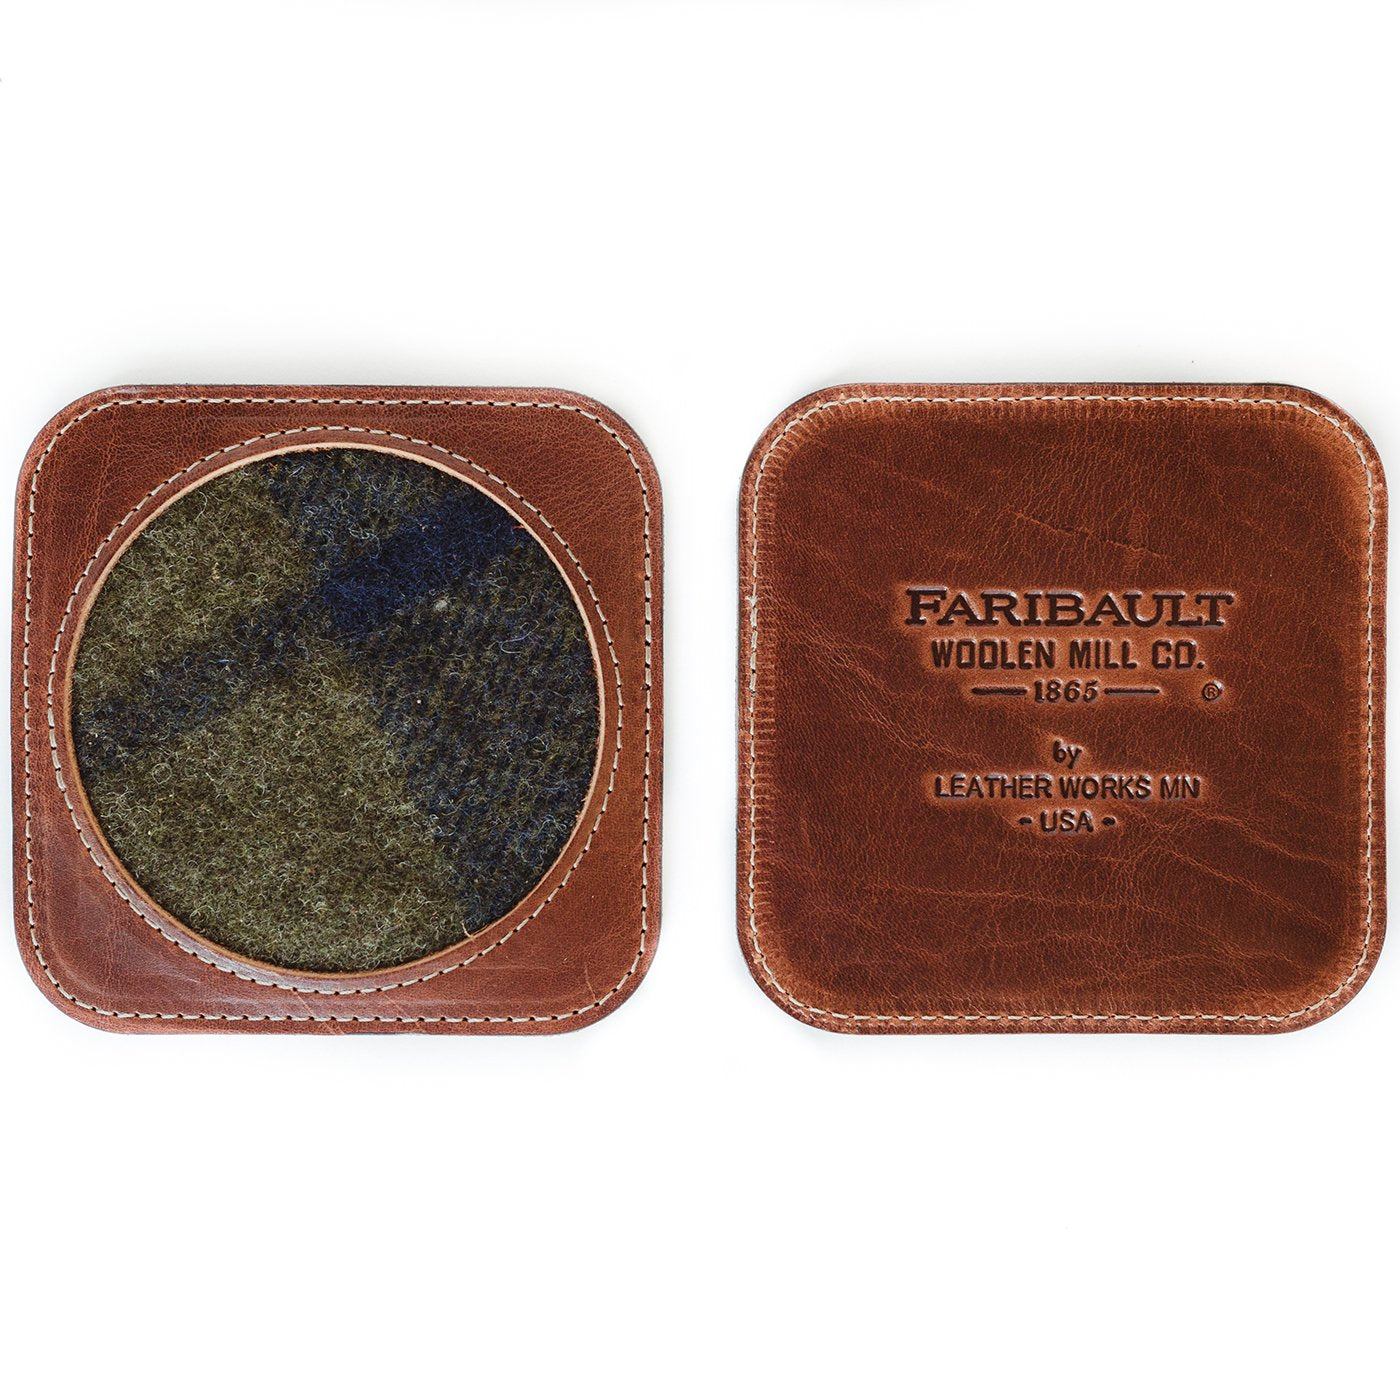 Faribault Wool Brown Shadow Plaid Coaster HOME & GIFTS - Home Decor - Decorative Accents Faribault Woolen Mill Co. Teskeys